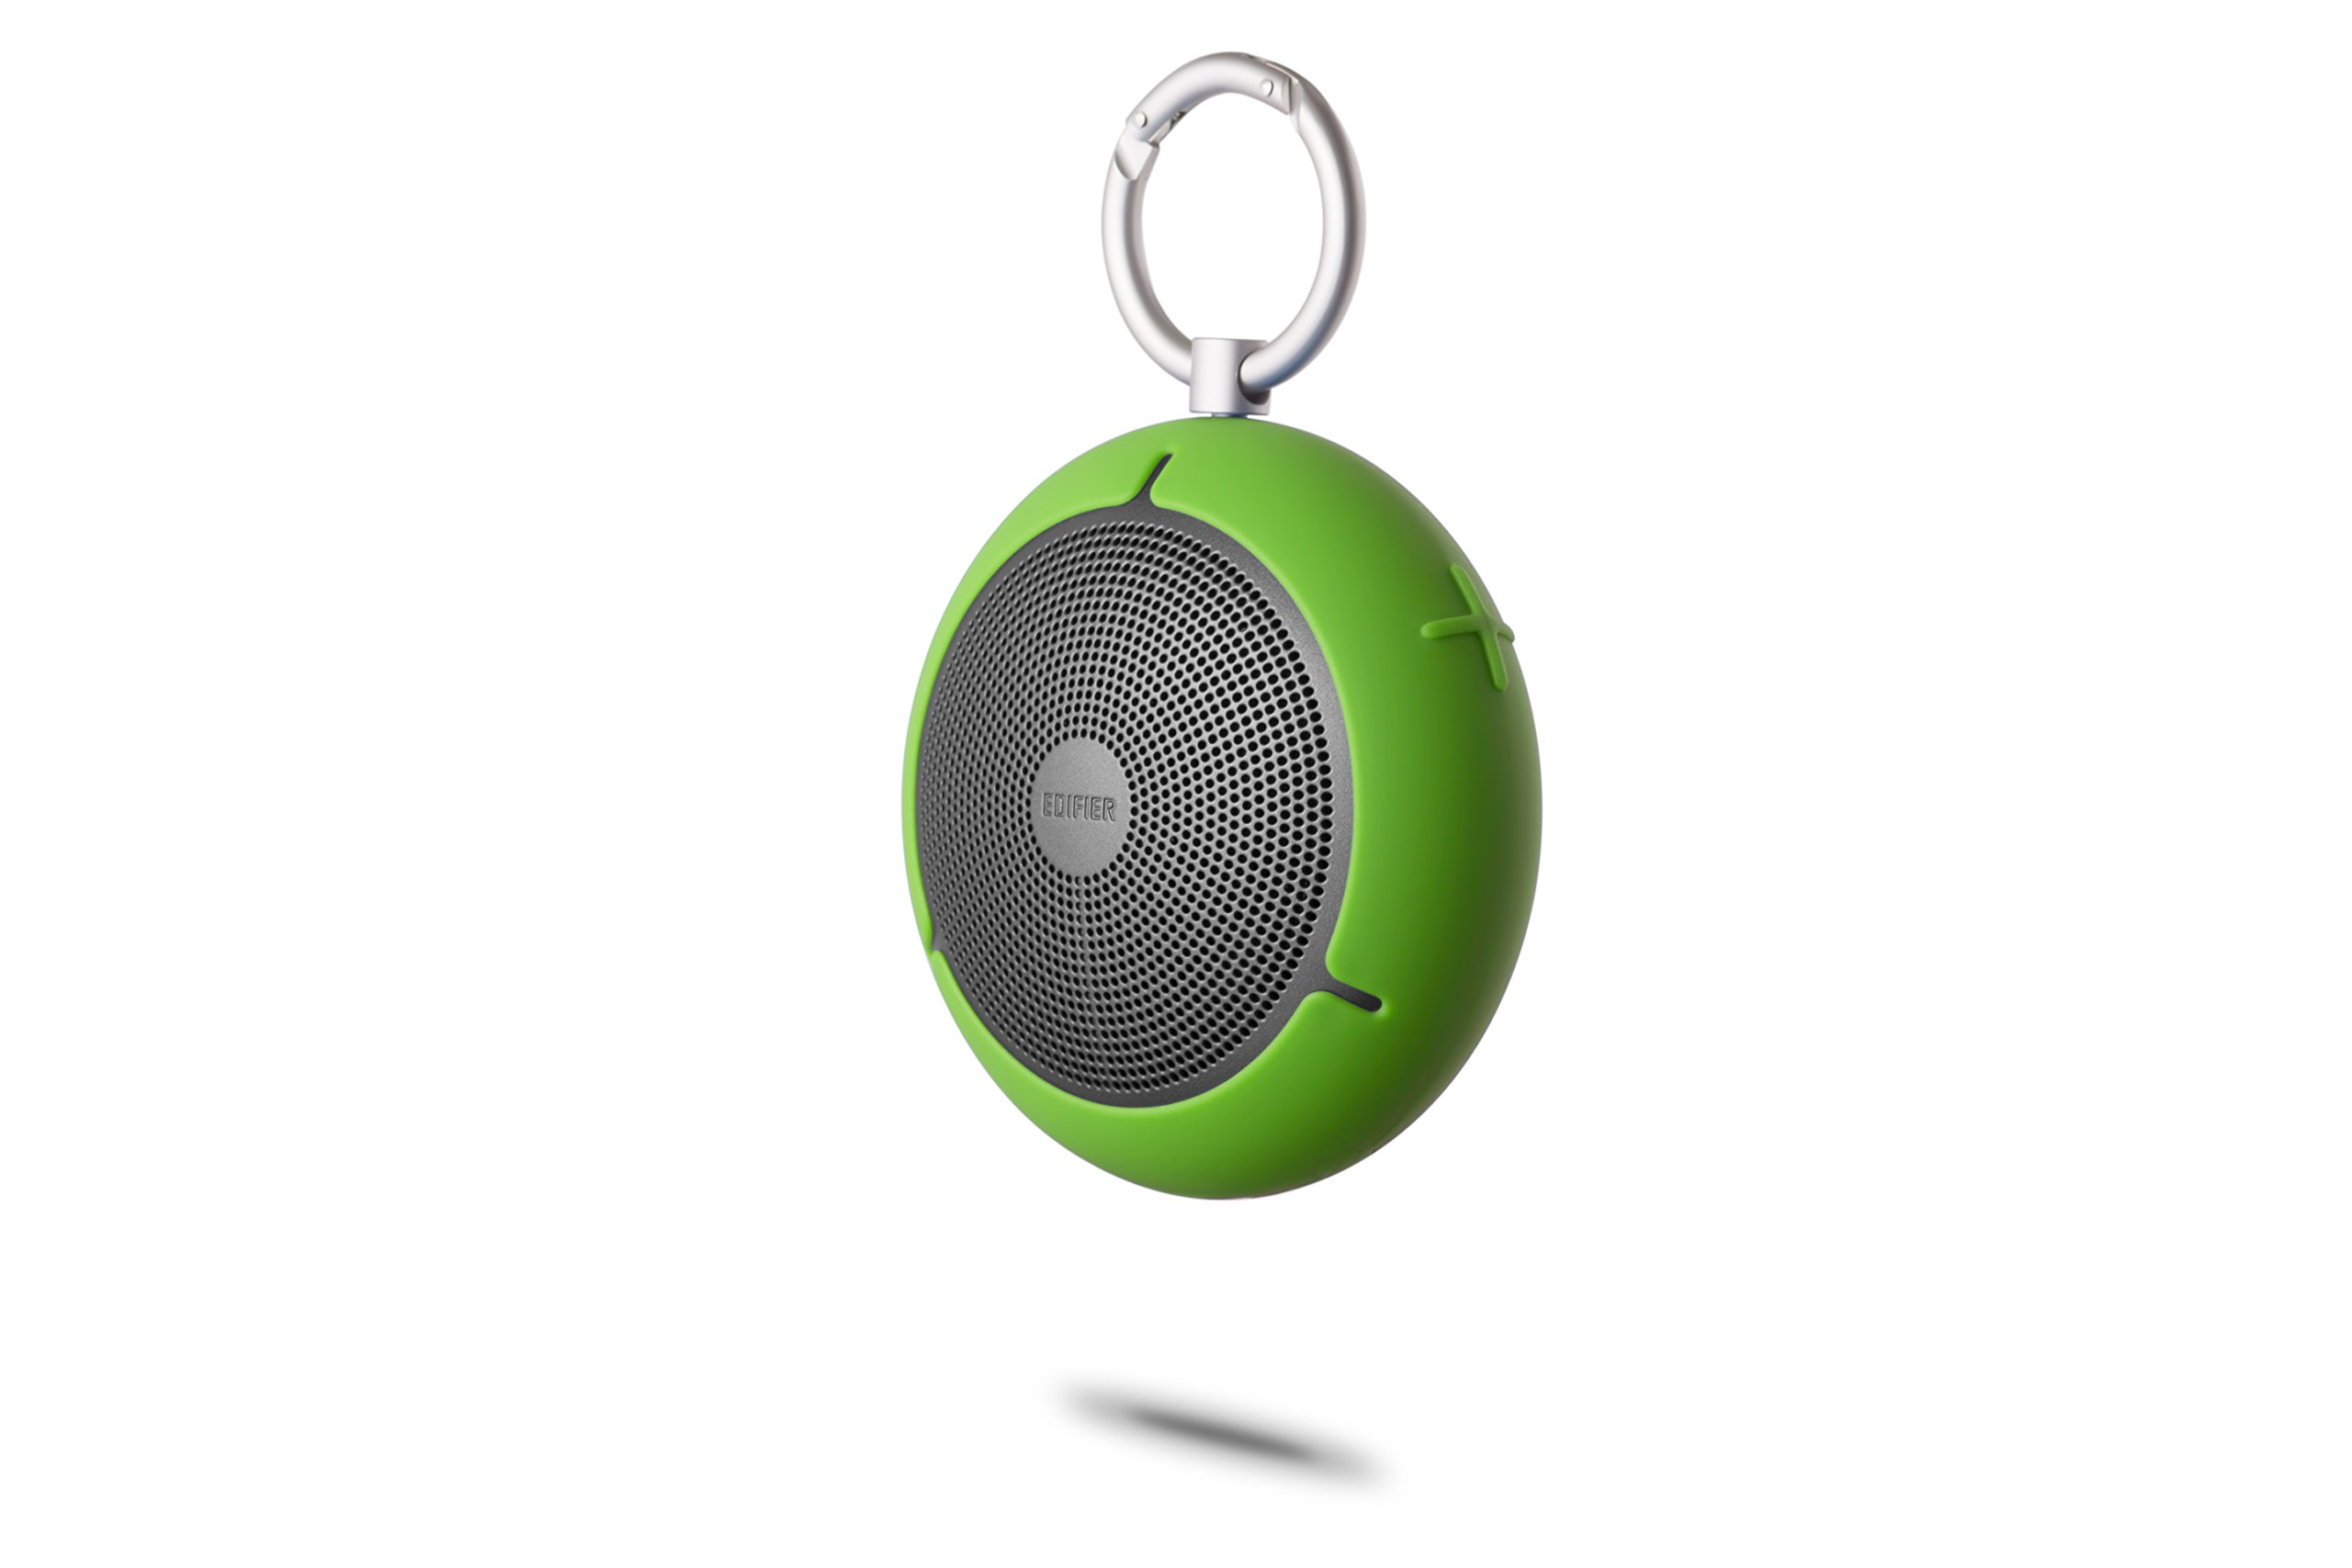 Edifier Mp100 Portable Bluetooth Speaker - Wireless...